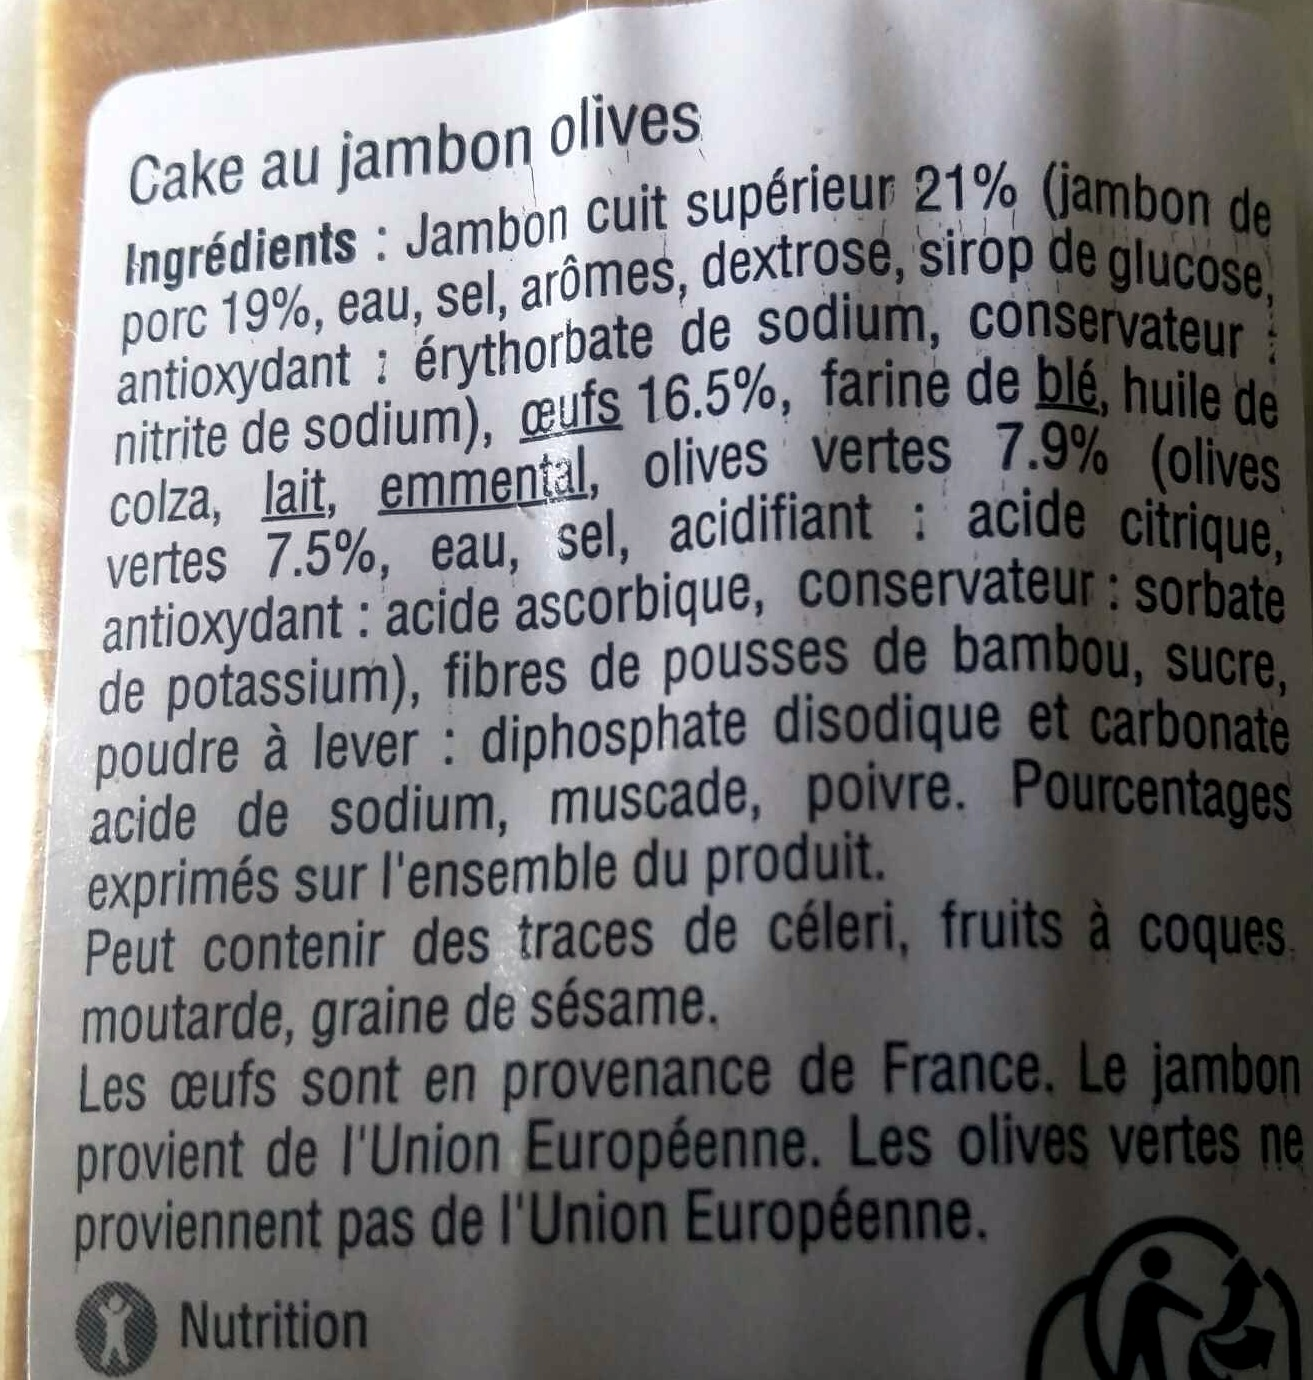 Cake Jambon Olives - Ingredients